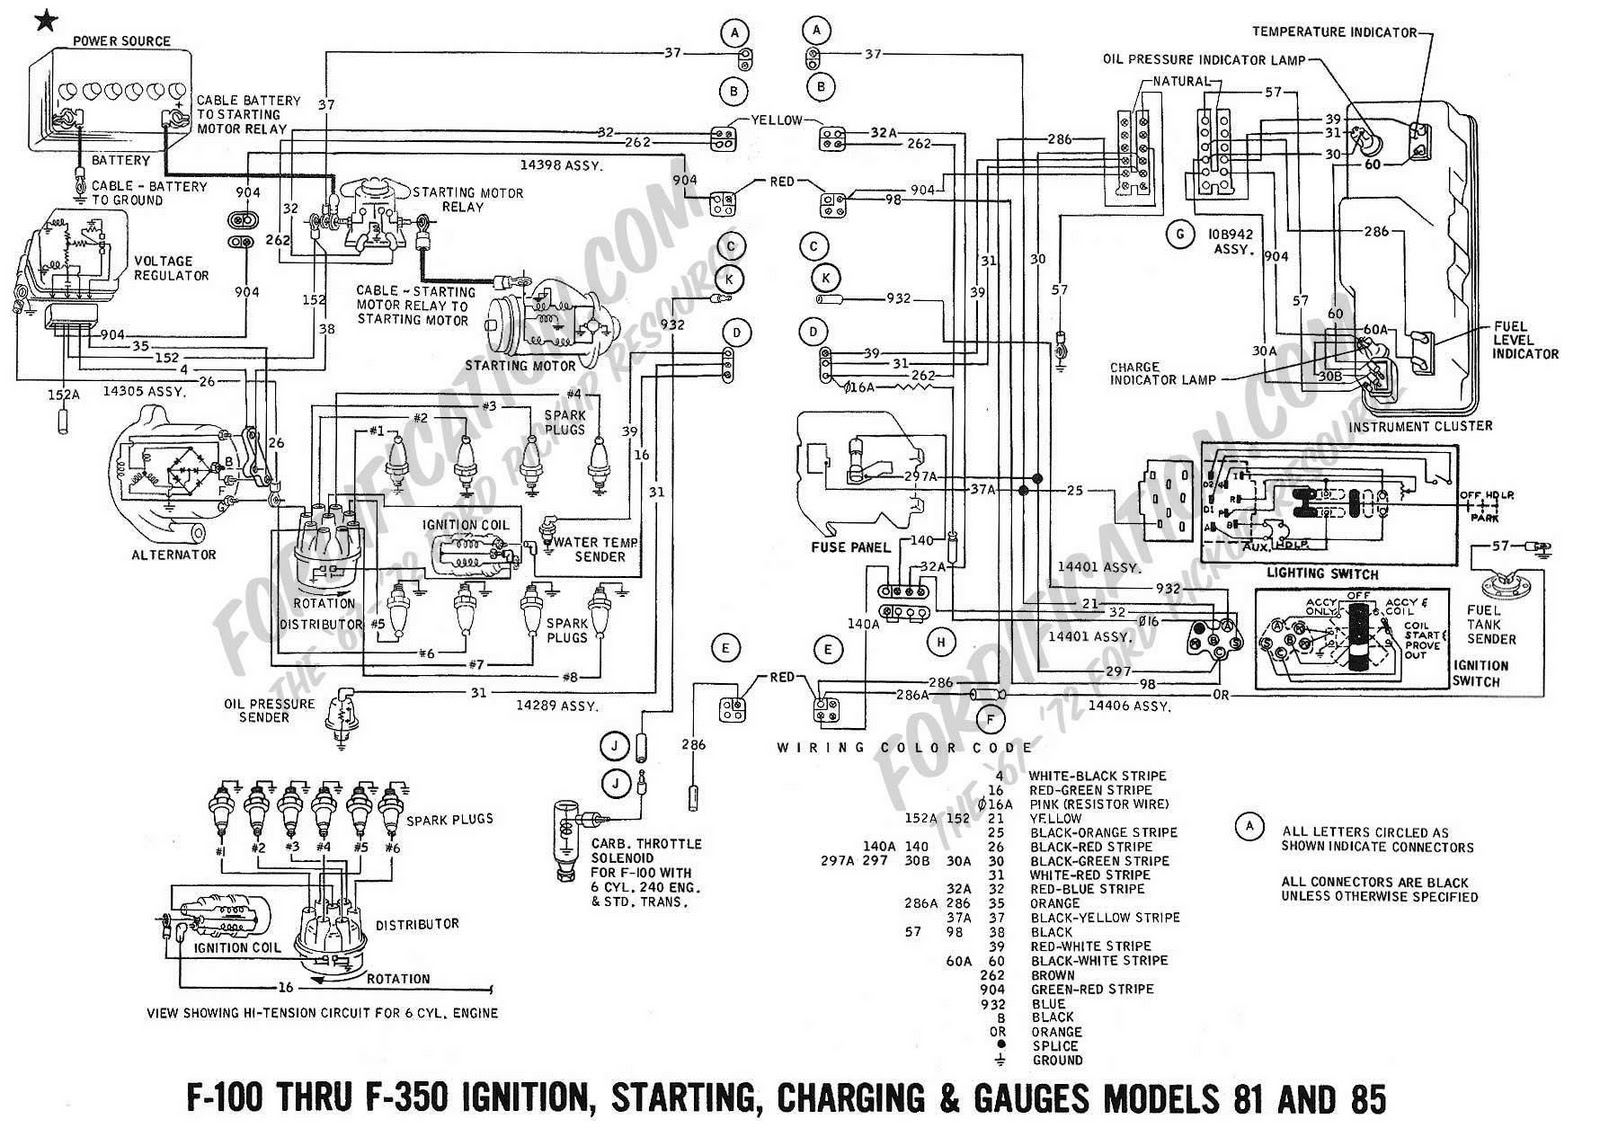 66 Ford Truck Wiring Diagram Not Lossing Fairlane Diagrams Regulator 1966 Mustang Ignition Also F100 Rh 28 Ccainternational De Voltage F 150